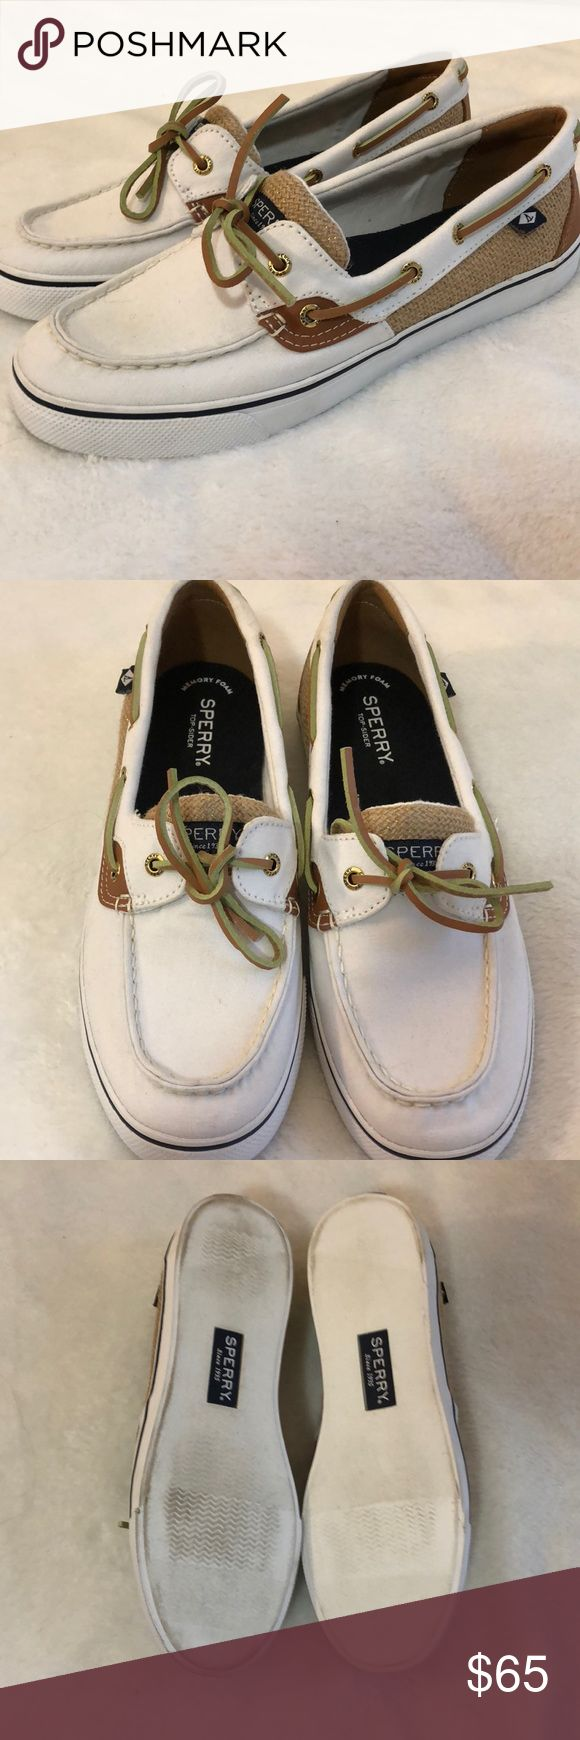 White Sperrys NWOT Never Worn Slight discoloring on bottoms - purchased that way Perfect condition Offers encouraged Runs true to size Special memory foam style No box  Thanks for your interest! Please check out my other listings! Sperry Top-Sider Shoes #MemoryFoamStyles